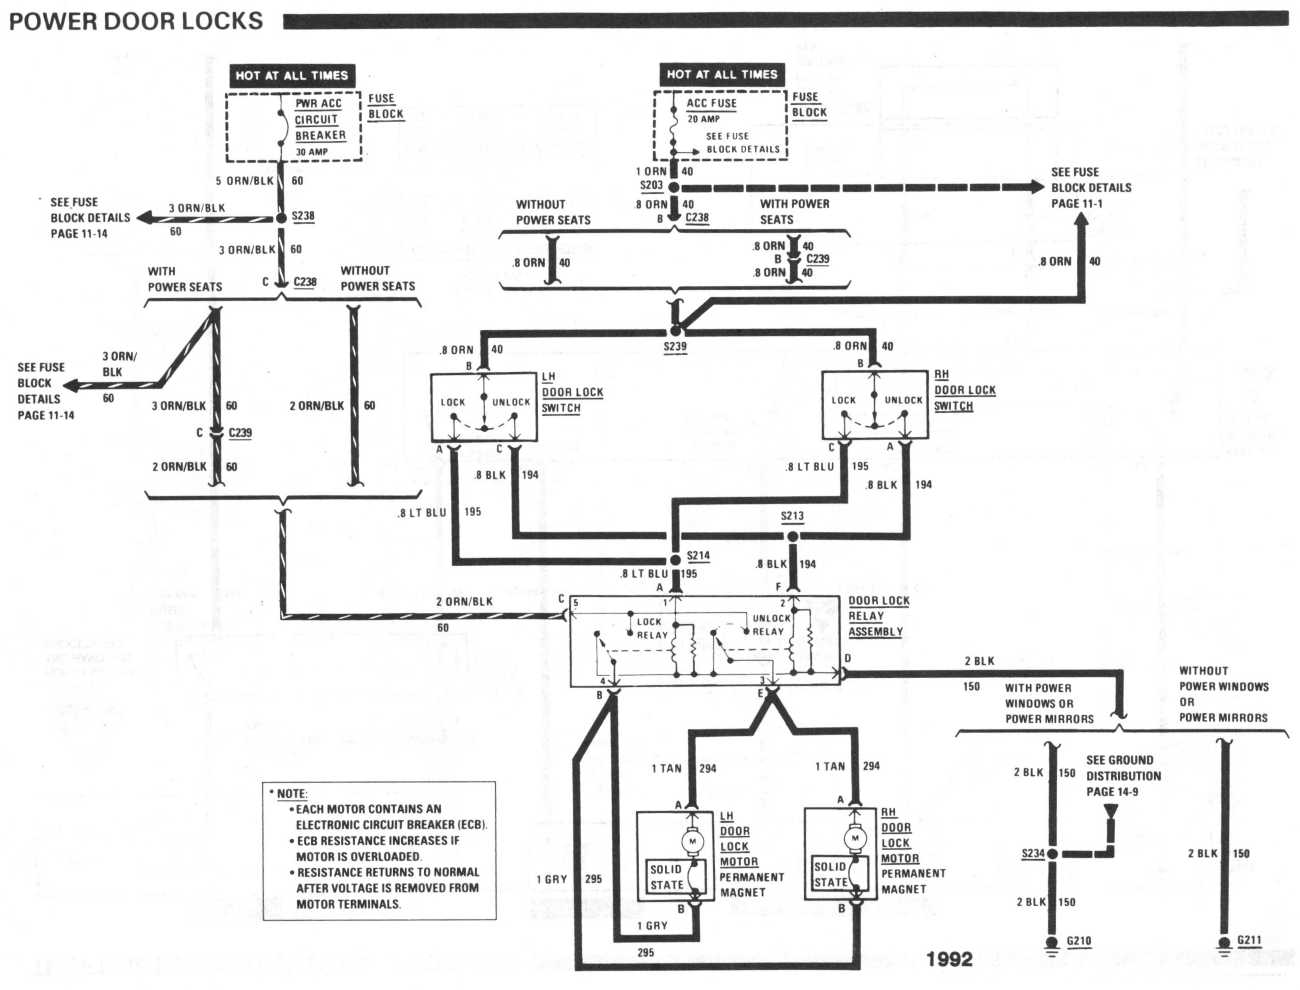 diagram_1992_power_door_locks power door locks not working at all third generation f body 1997 ford f150 power door lock wiring diagram at readyjetset.co